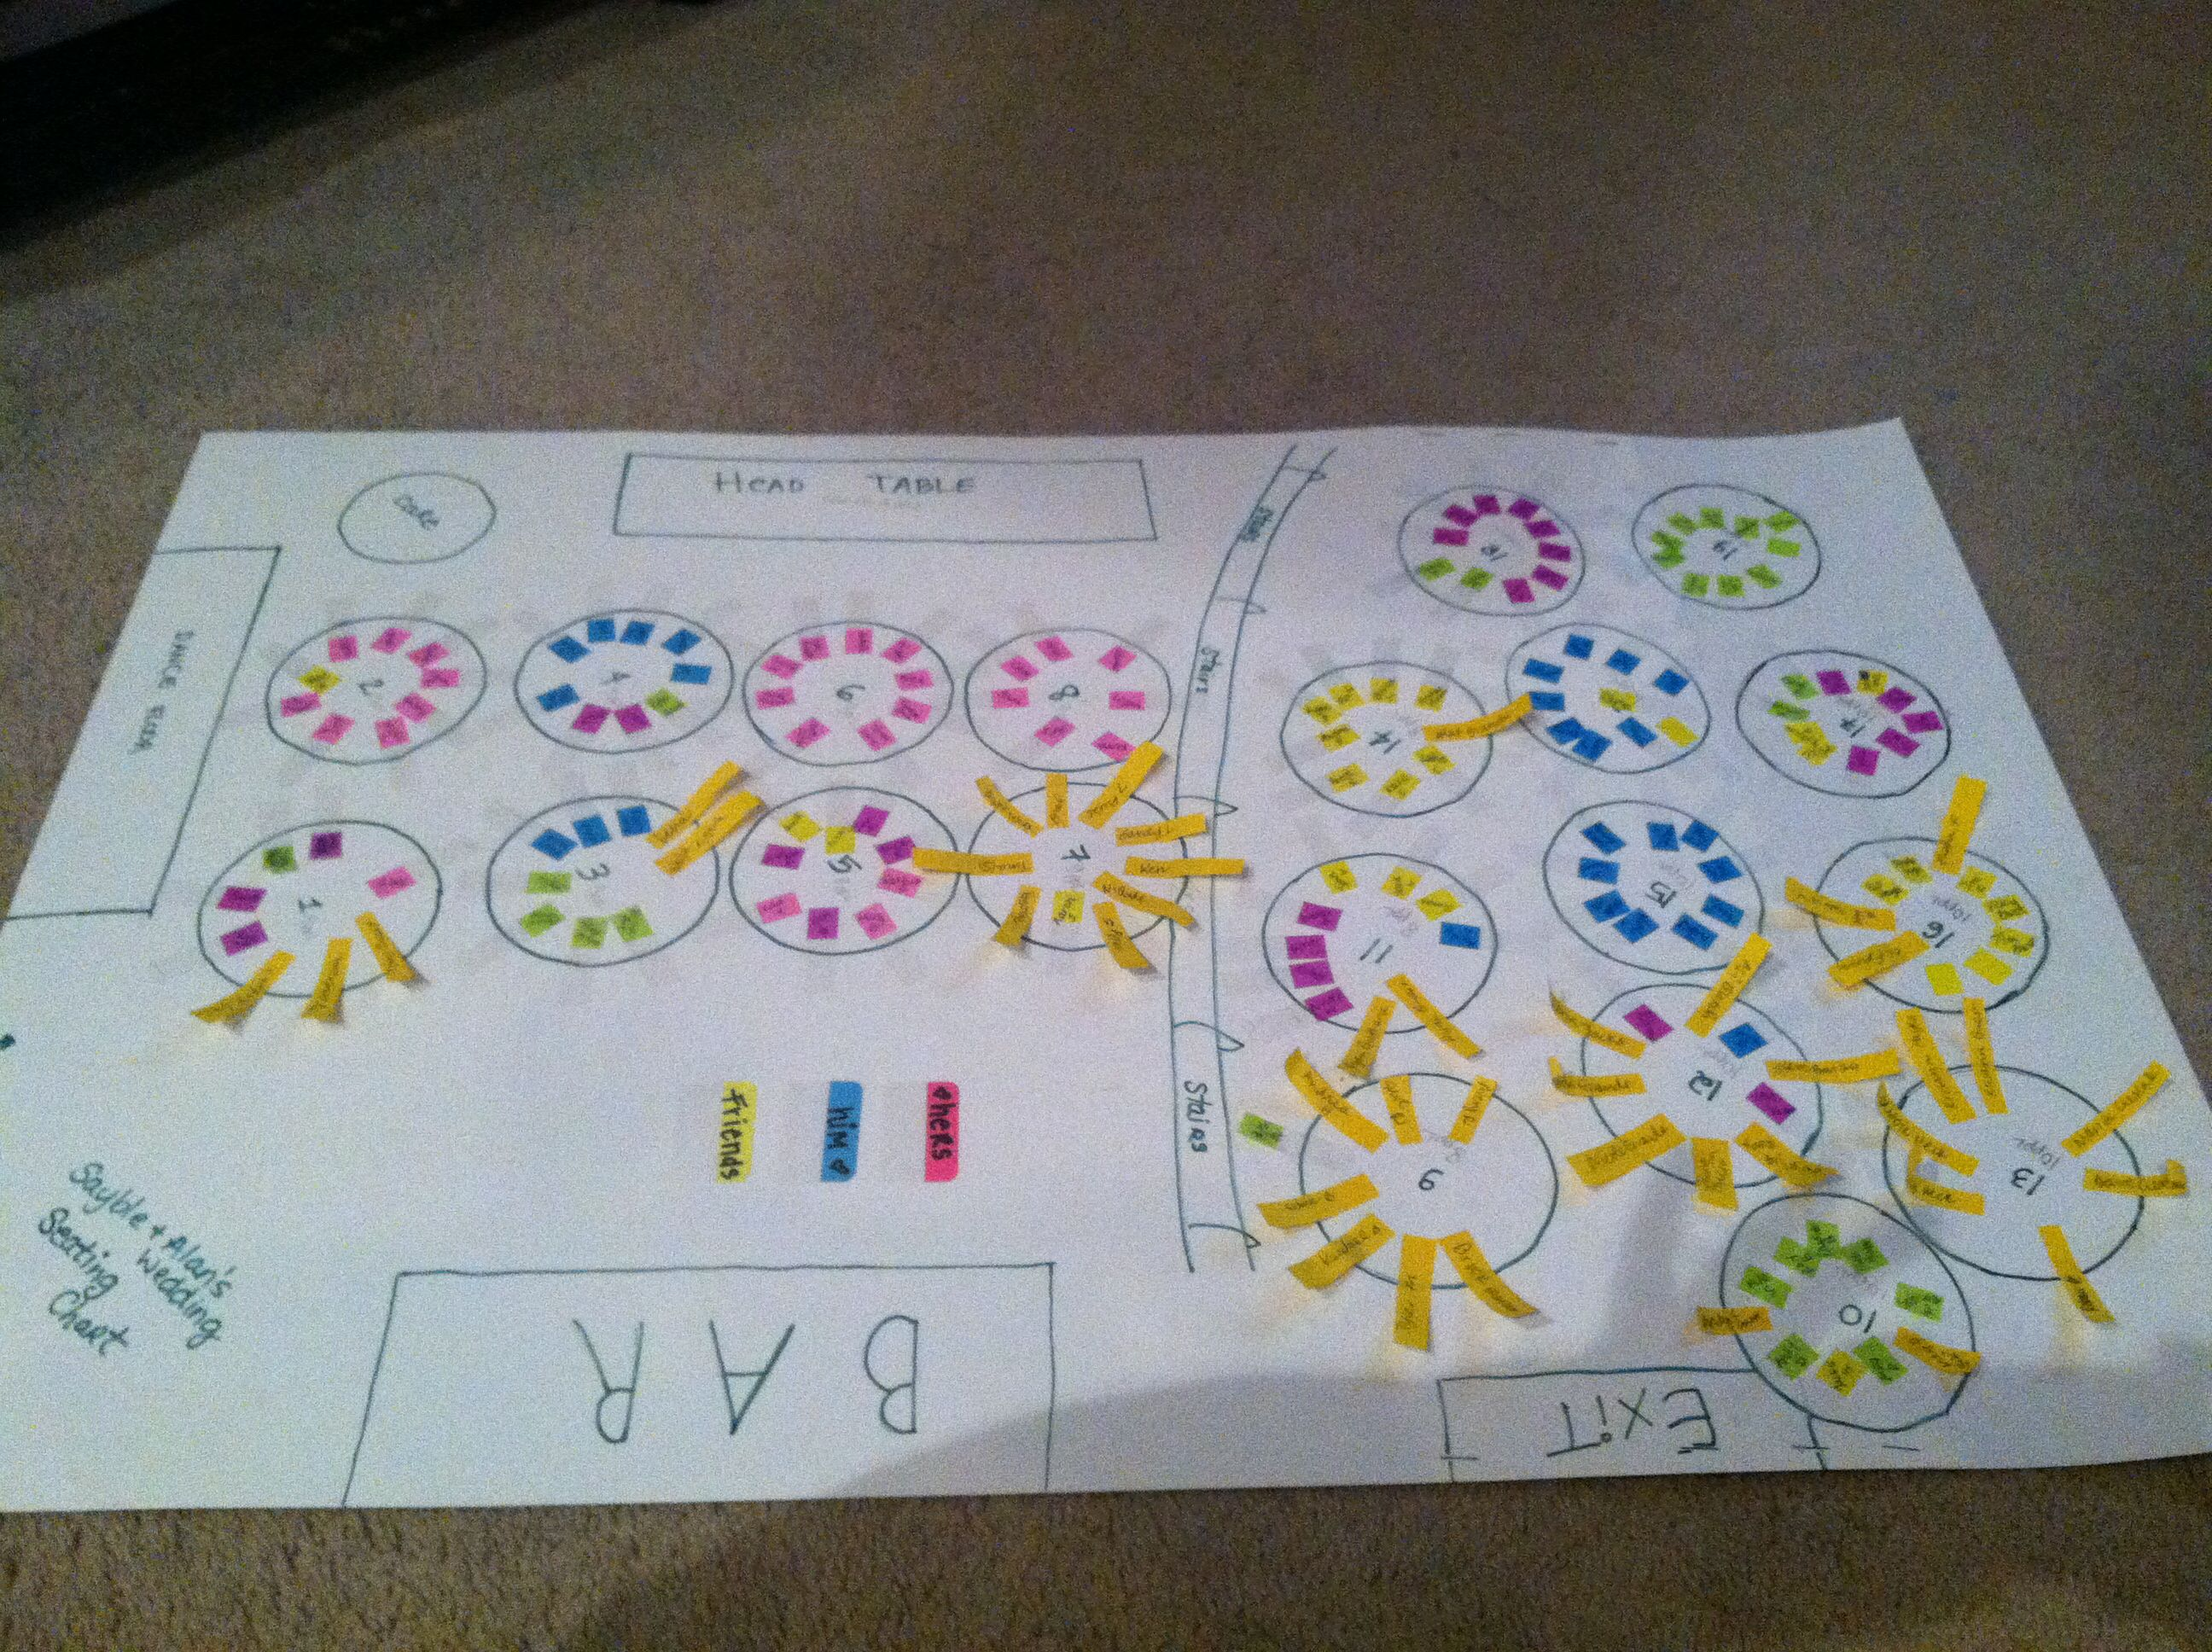 Wedding Seating Chart - How To Organize